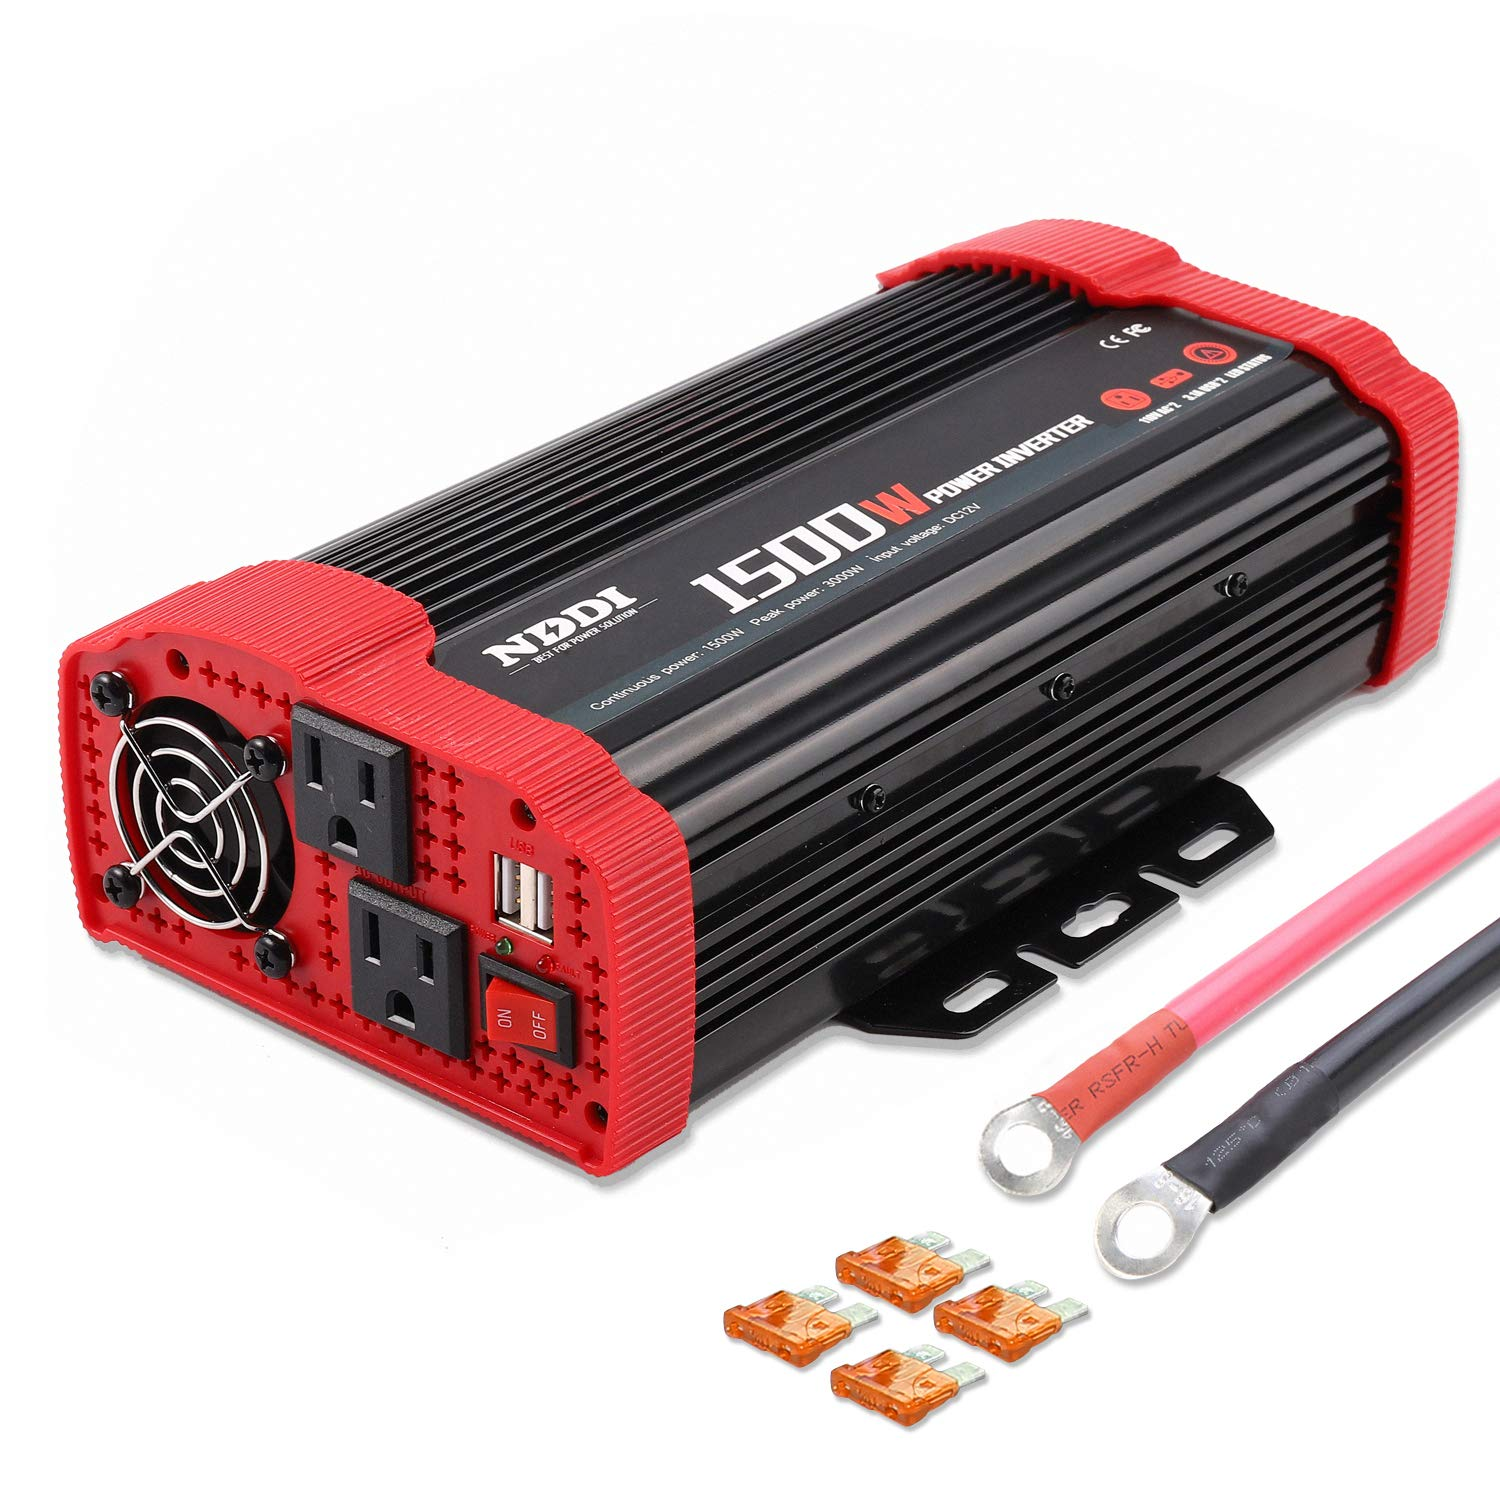 1500W Car Power Inverter 12V DC to 110V AC Car Converter Charger Adapter with Dual 3.1A USB Port and AC Outlets Quick Charging